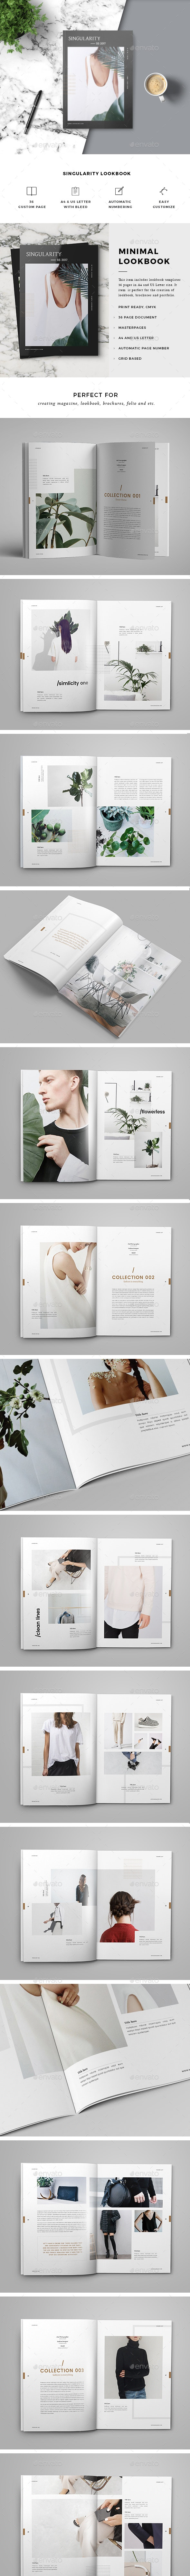 LookBook Magazine - Magazines Print Templates